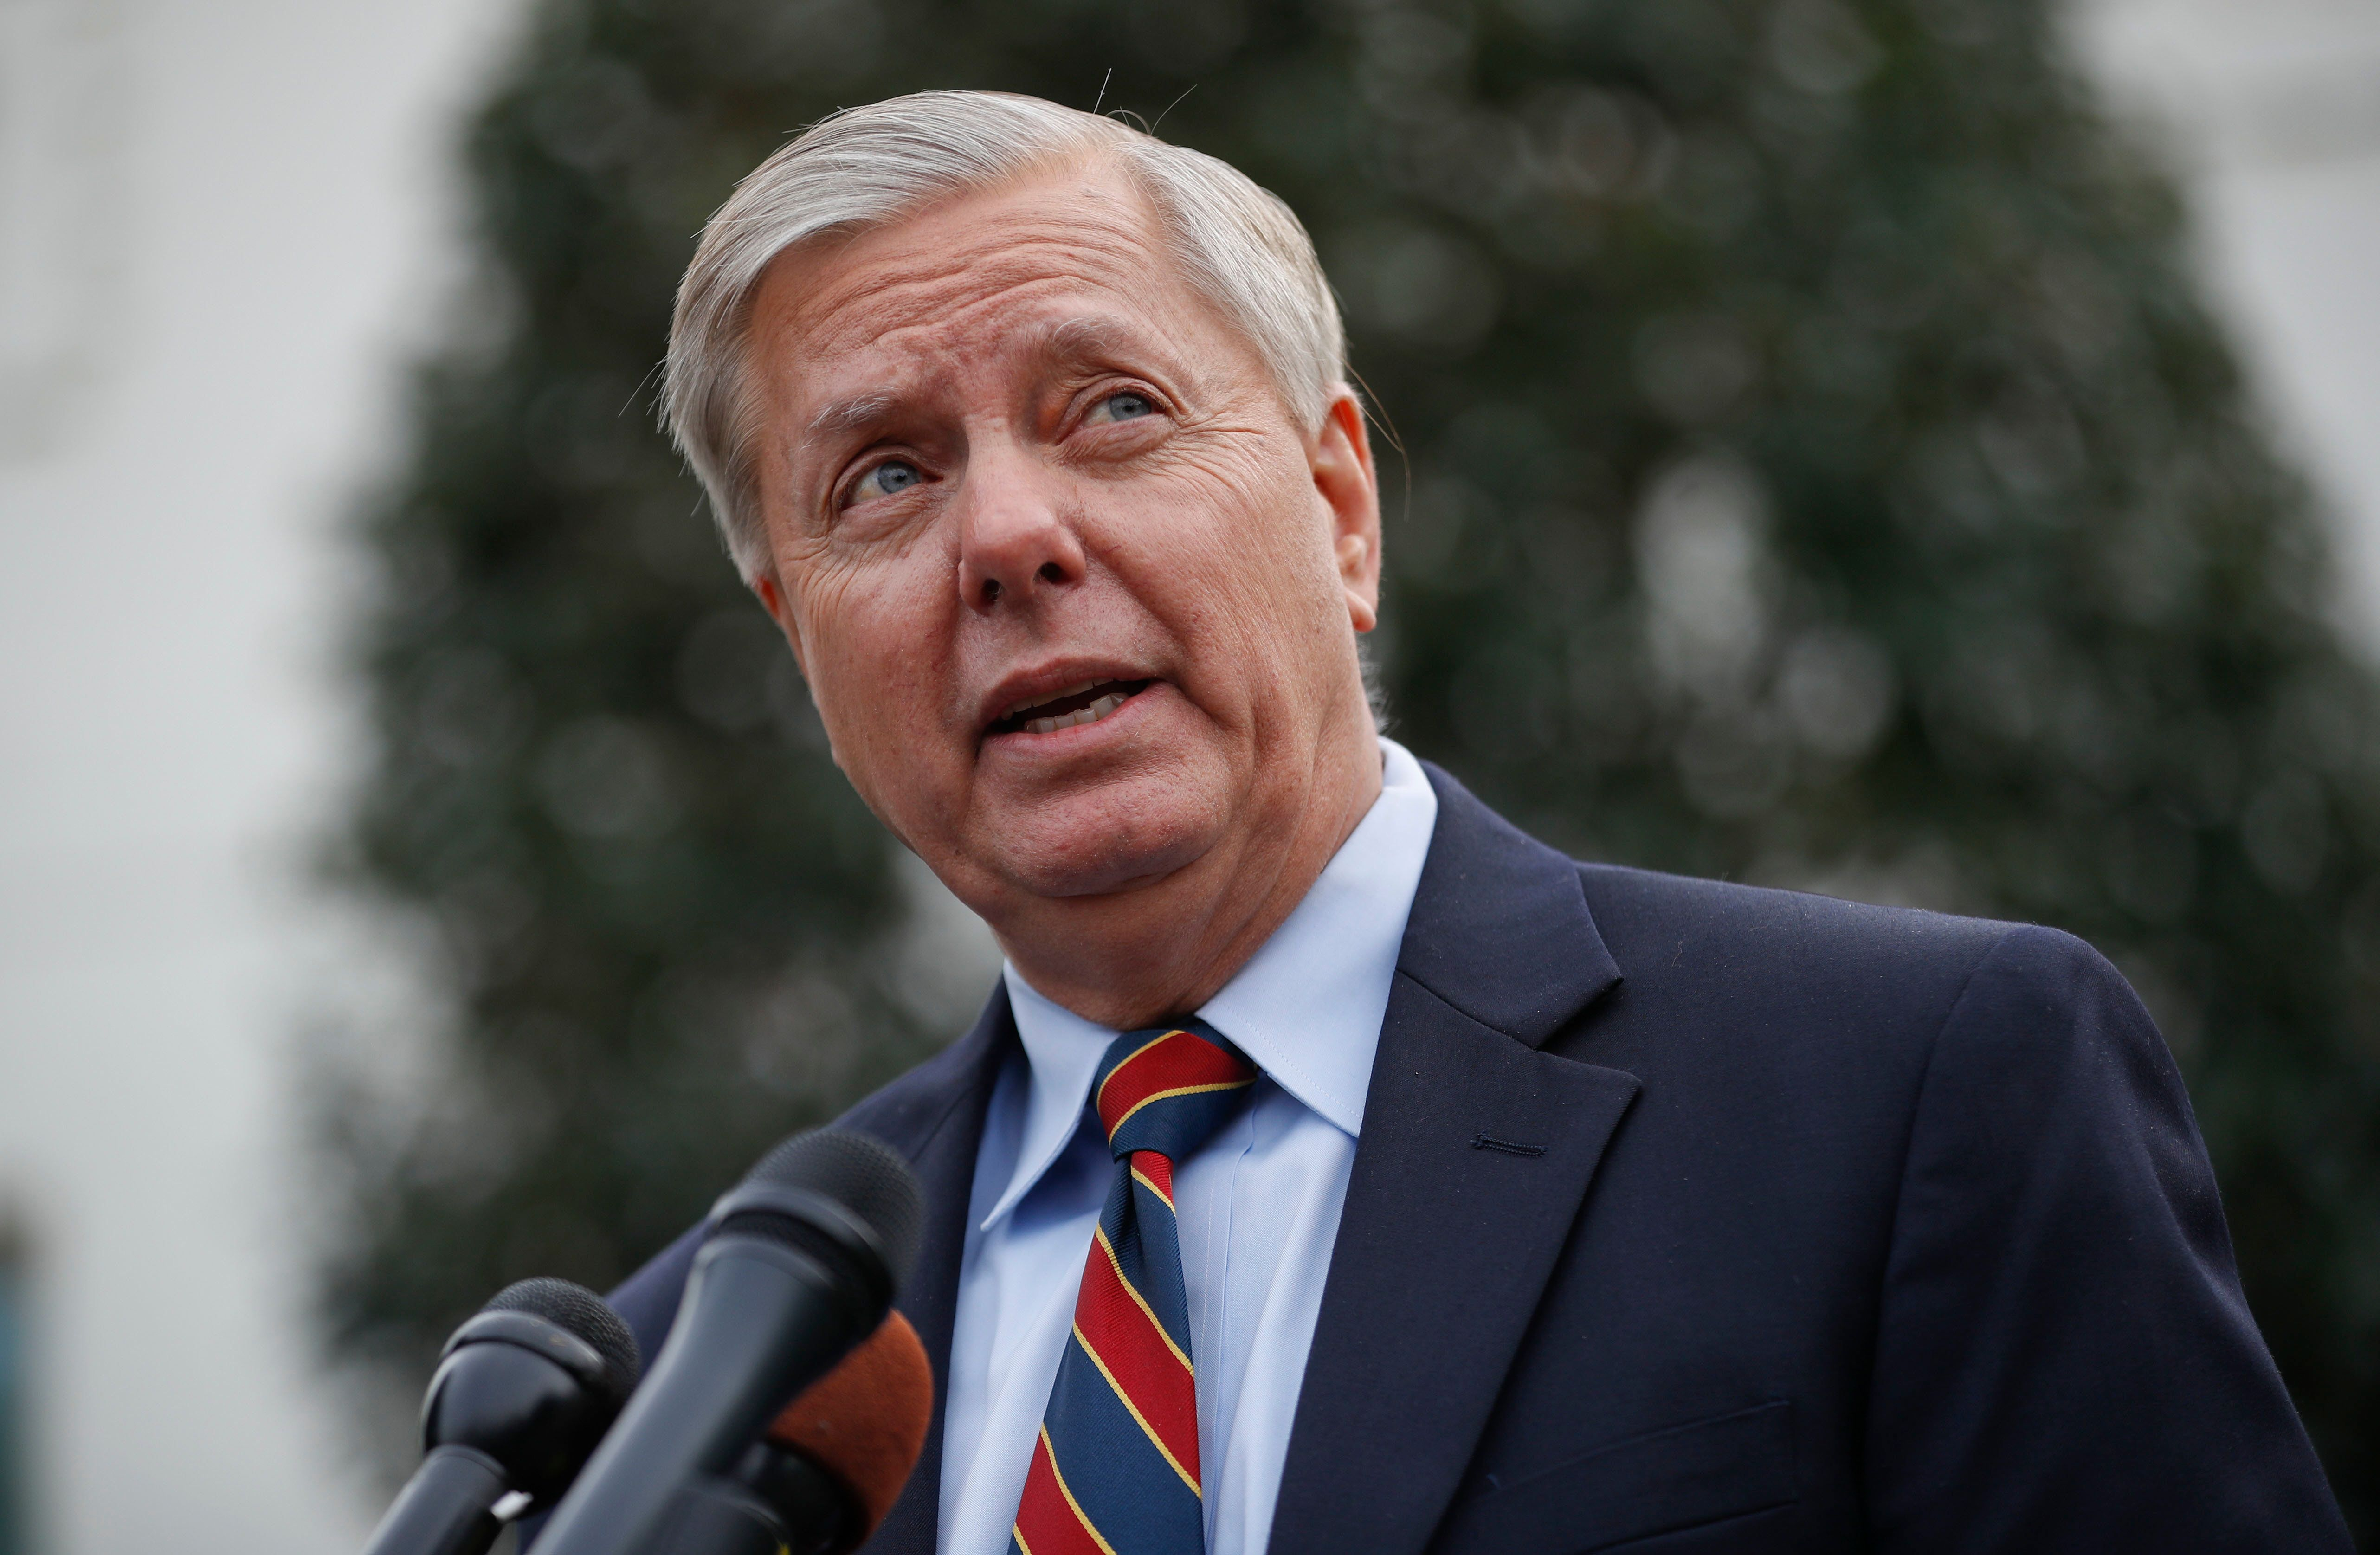 Sen. Lindsey Graham, R-S.C., speaks to members of the media outside the West Wing of the White House in Washington, after his meeting with President Donald Trump, Sunday, Dec. 30, 2018. (AP Photo/Pablo Martinez Monsivais)